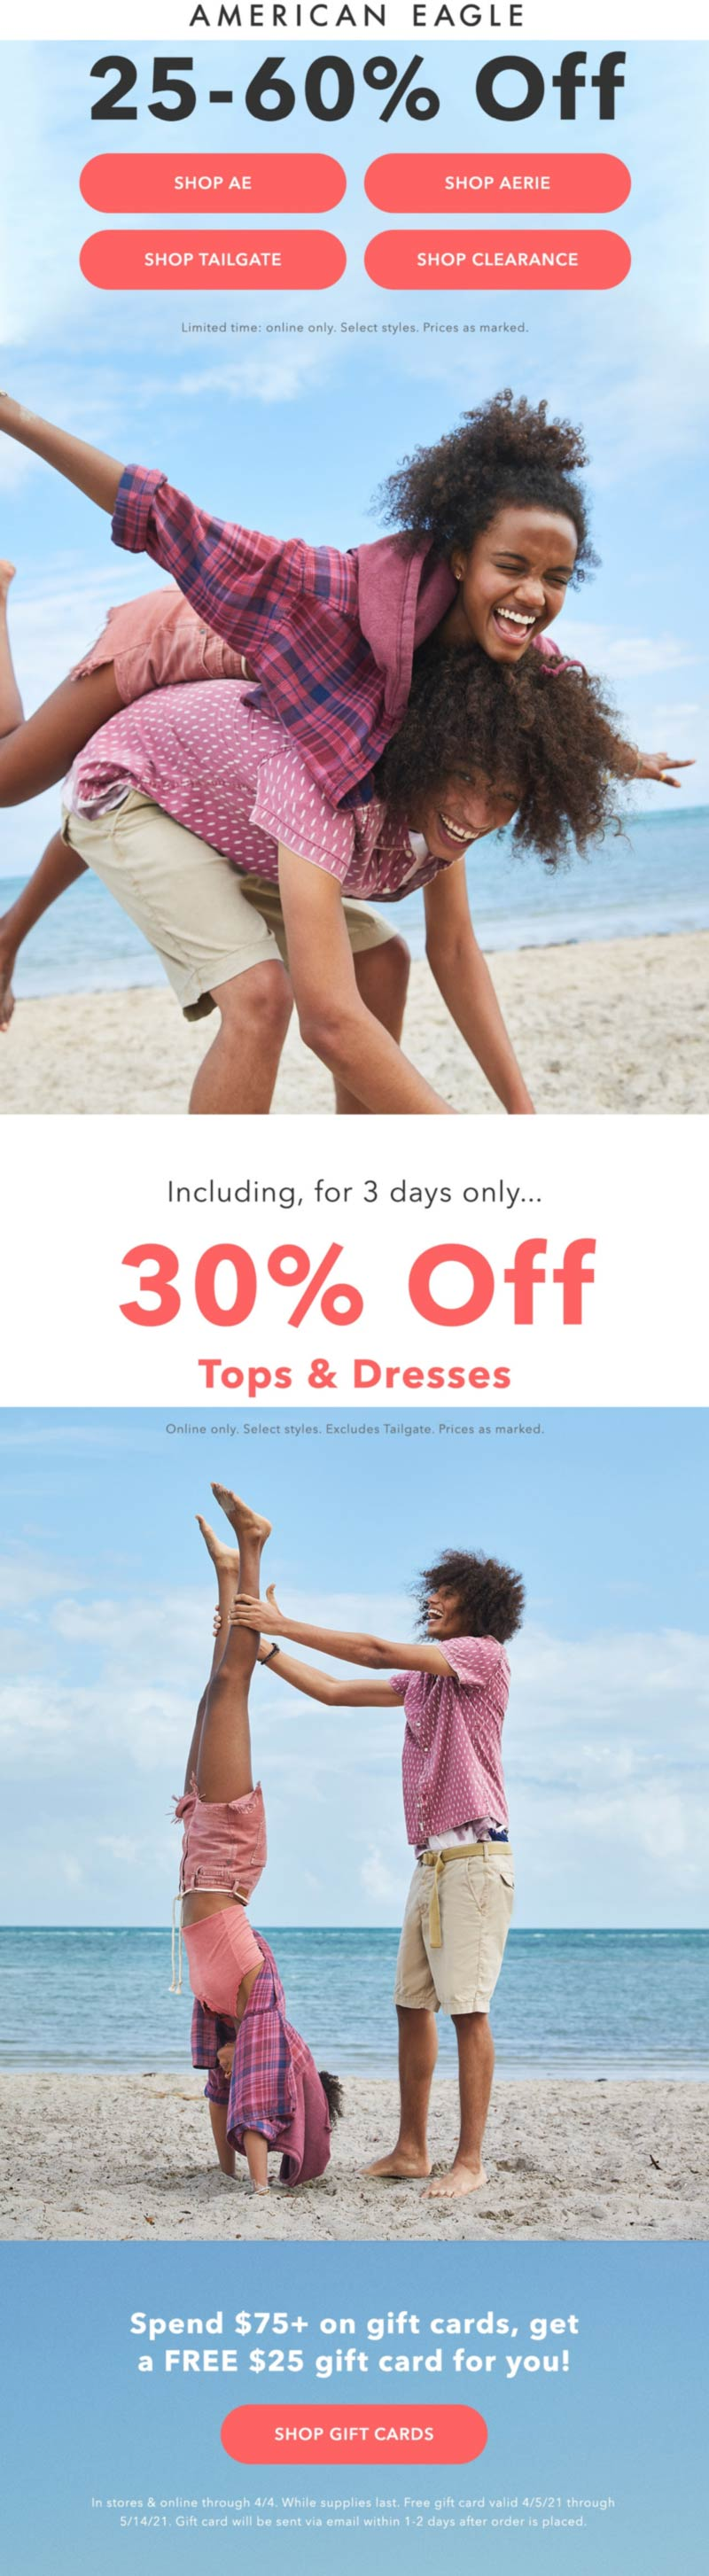 American Eagle stores Coupon  25-60% off everything online at American Eagle #americaneagle